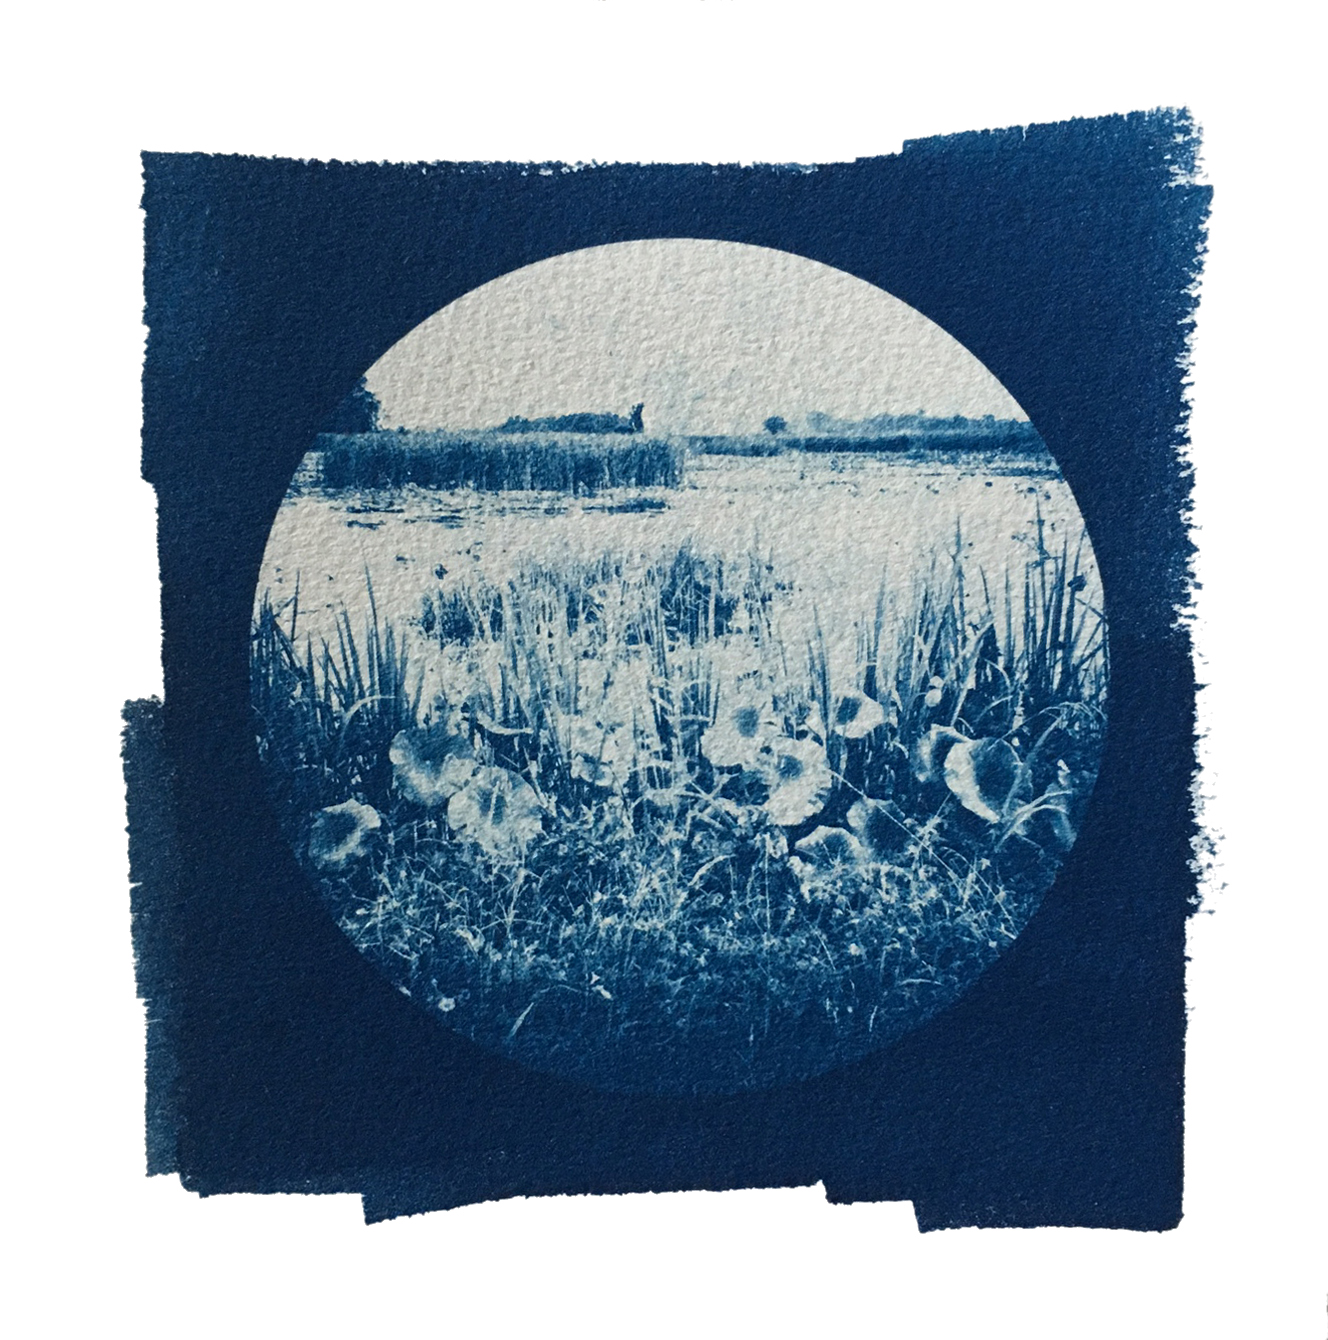 "TITLE /  Partner With the Sun No. 7  MEDIUM /  Cyanotype Print, Printed on 100% Cotton Paper  SIZE /  7"" x 7""  PRICE /  $200.00"